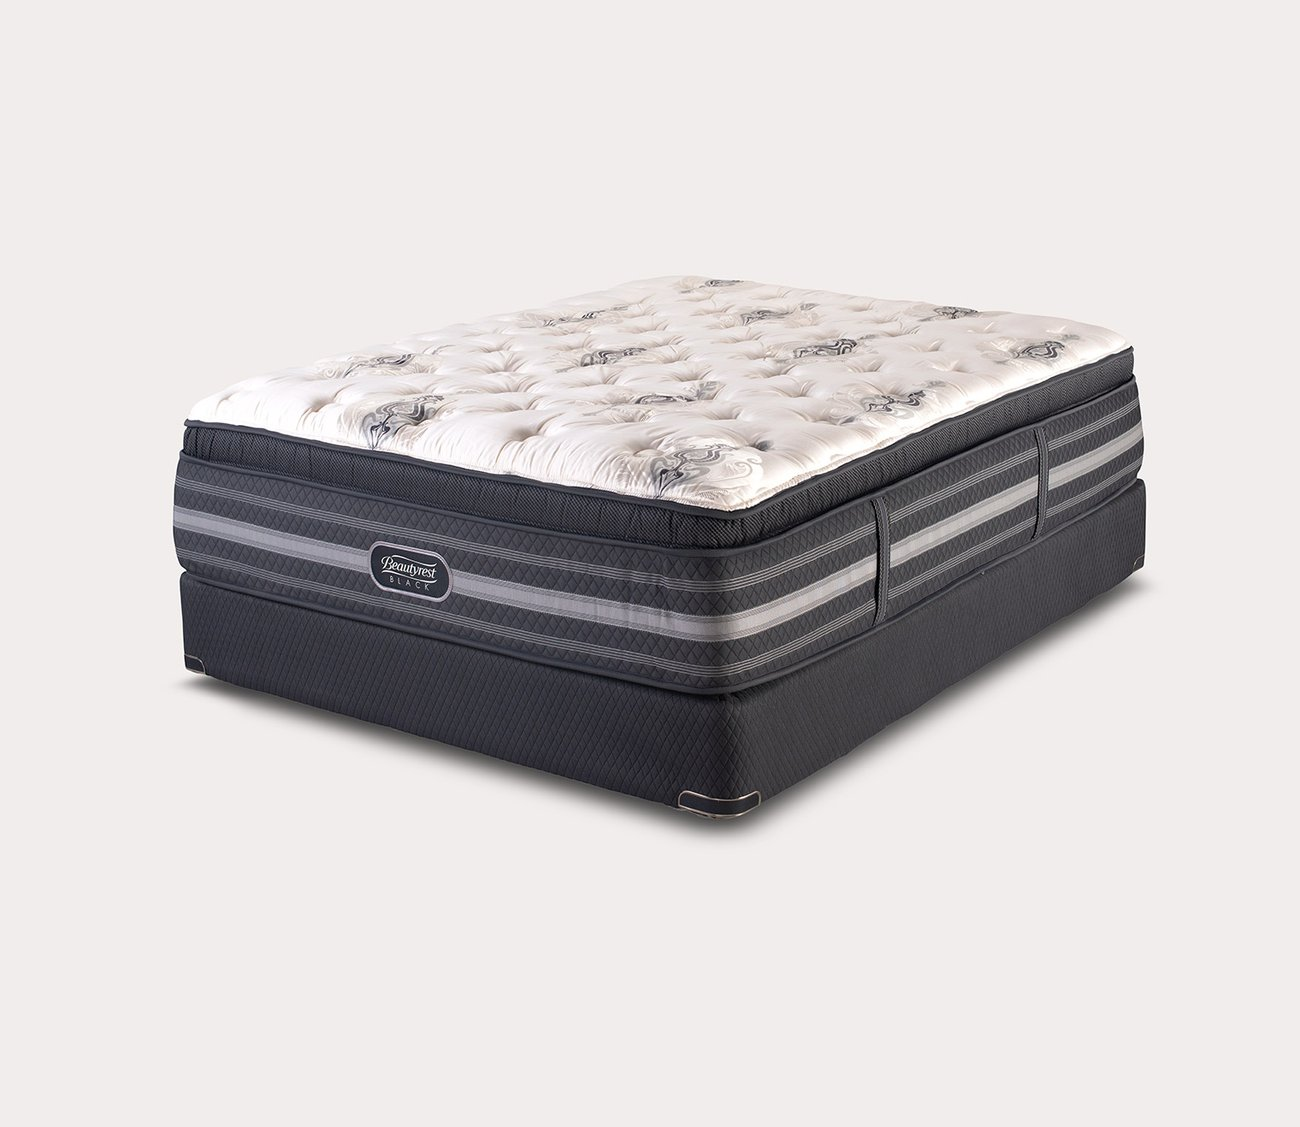 Beautyrest Black King Size Beautyrest Black Mattress Reviews Goodbed